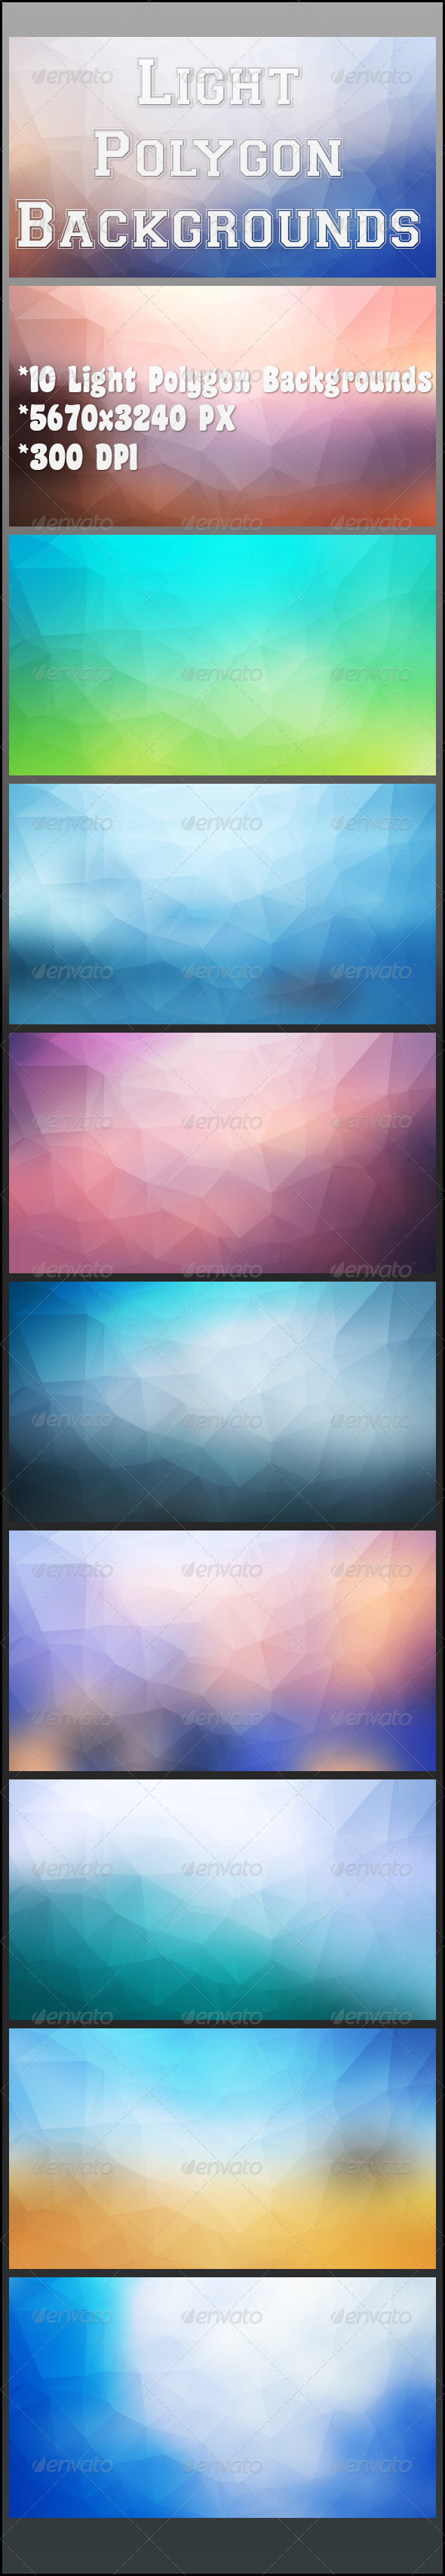 GraphicRiver Light Polygon Backgrounds 8501694